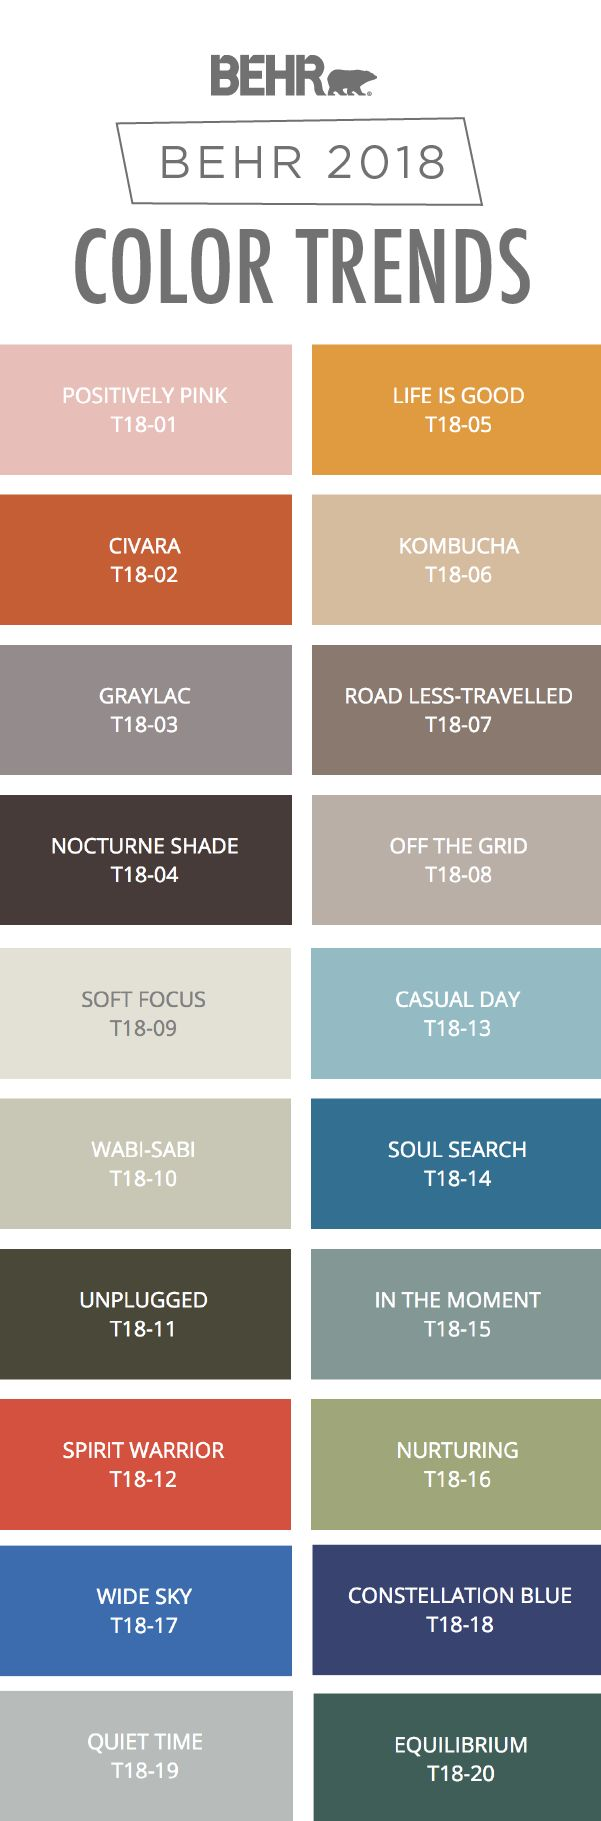 67 best behr 2018 color trends images on pinterest color for Behr neutral paint colors